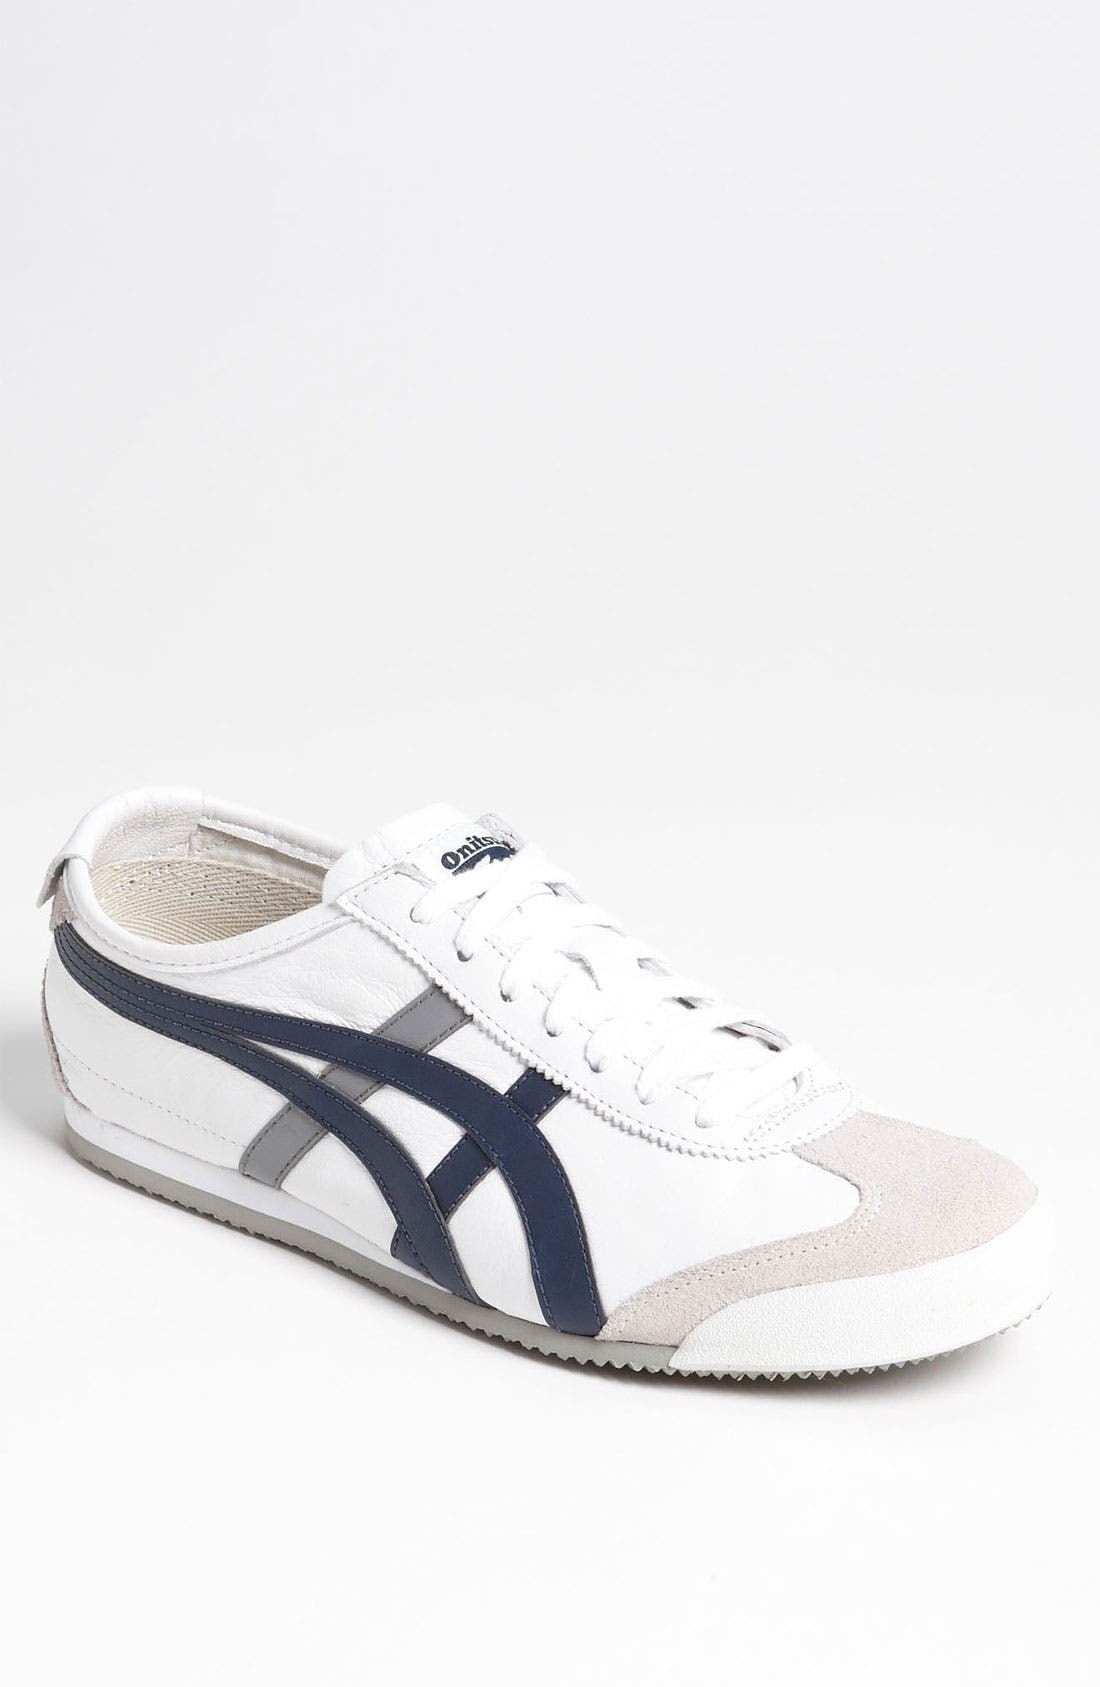 Alternate Image 1 Selected - Onitsuka Tiger™ 'Mexico 66' Sneaker (Men)